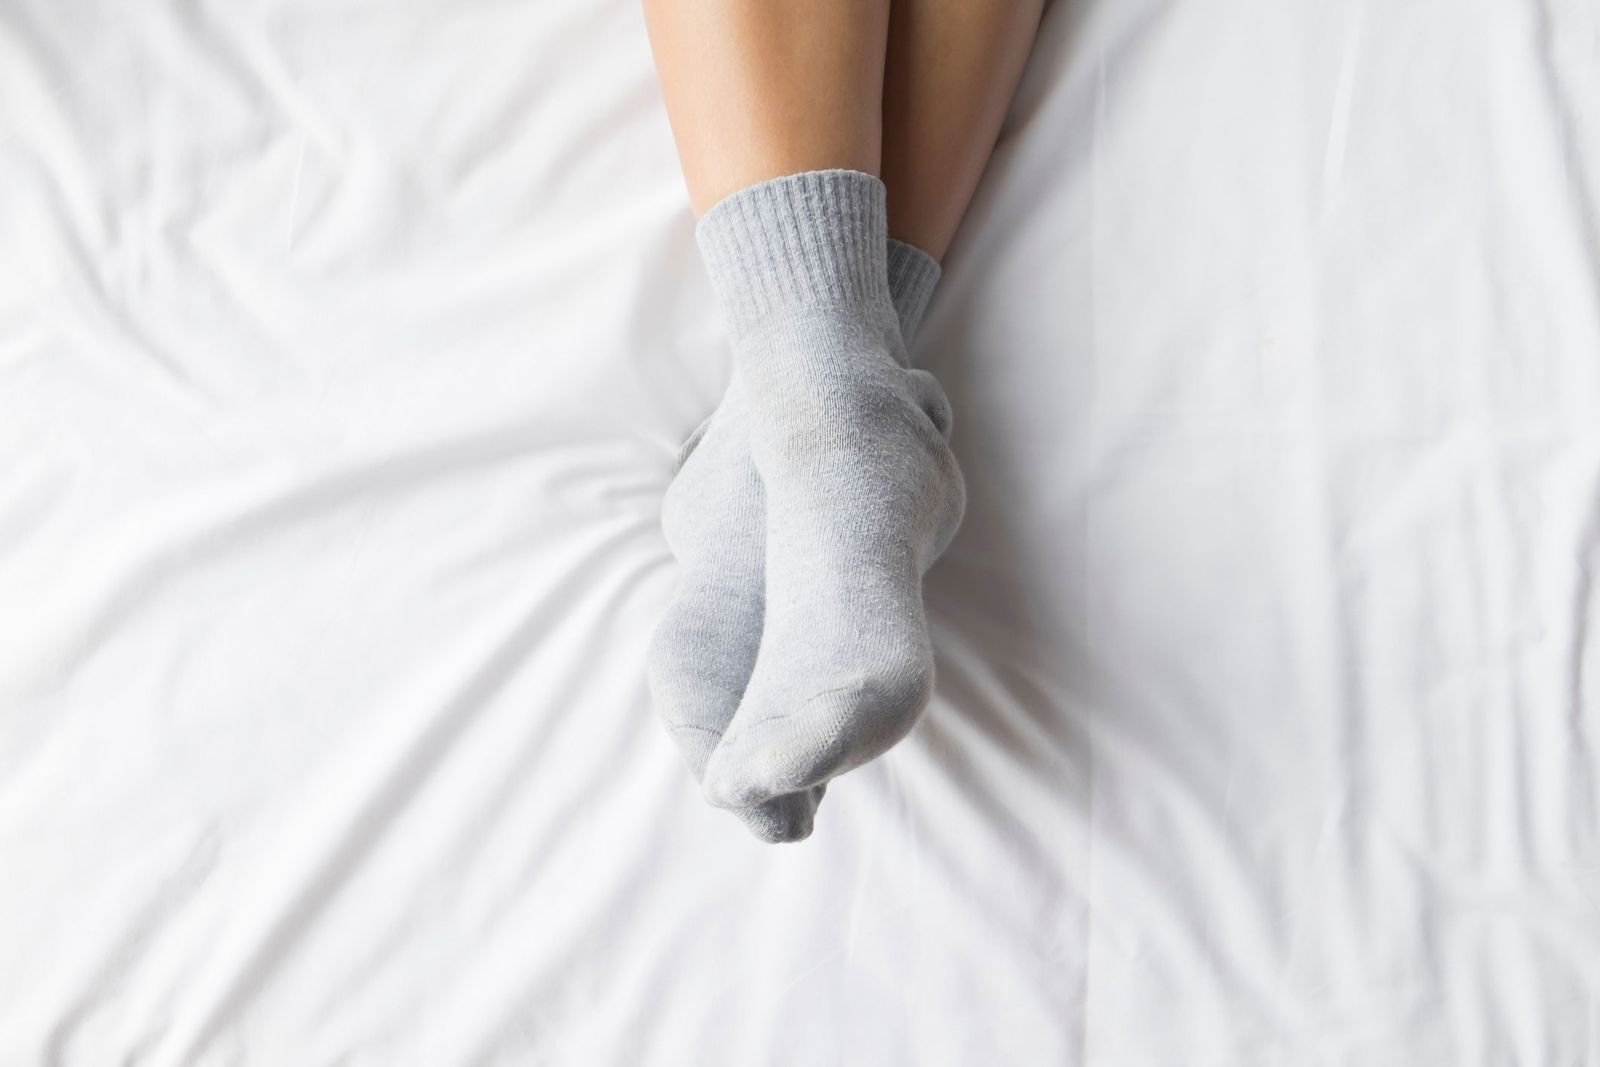 Wear Socks to Bed